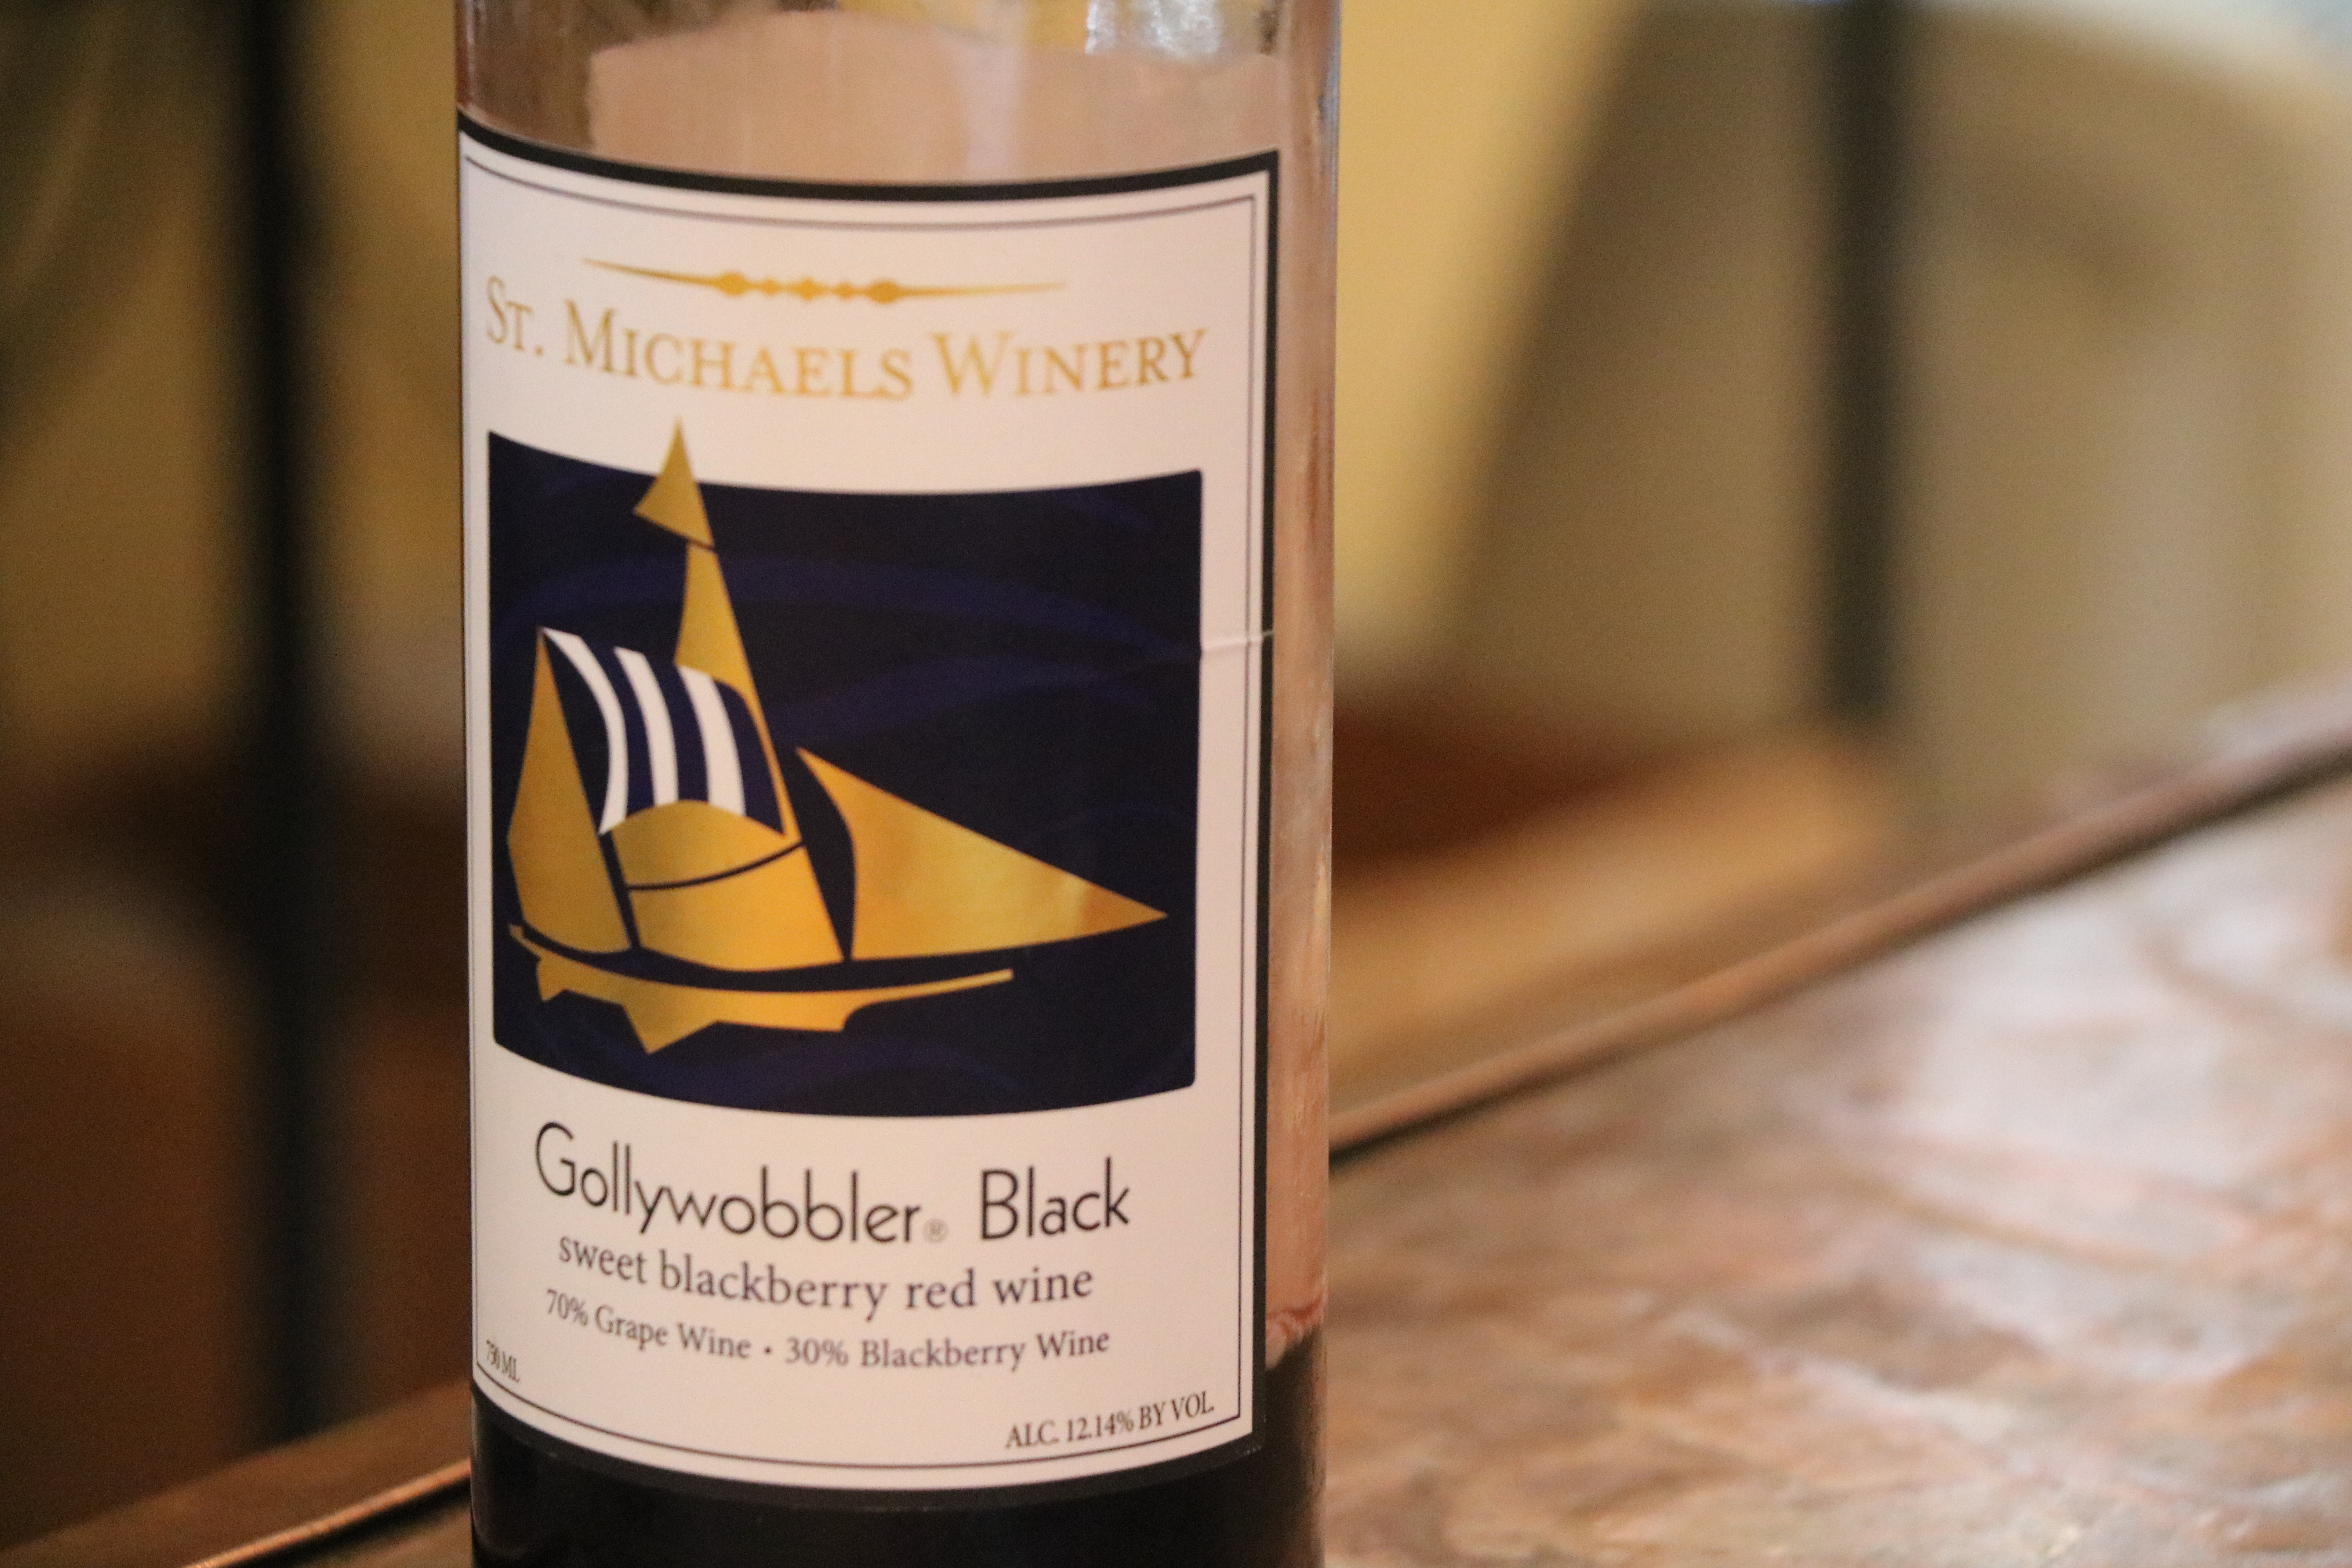 St Michaels Winery Named Shore Venue For Wine Tasting In Maryland